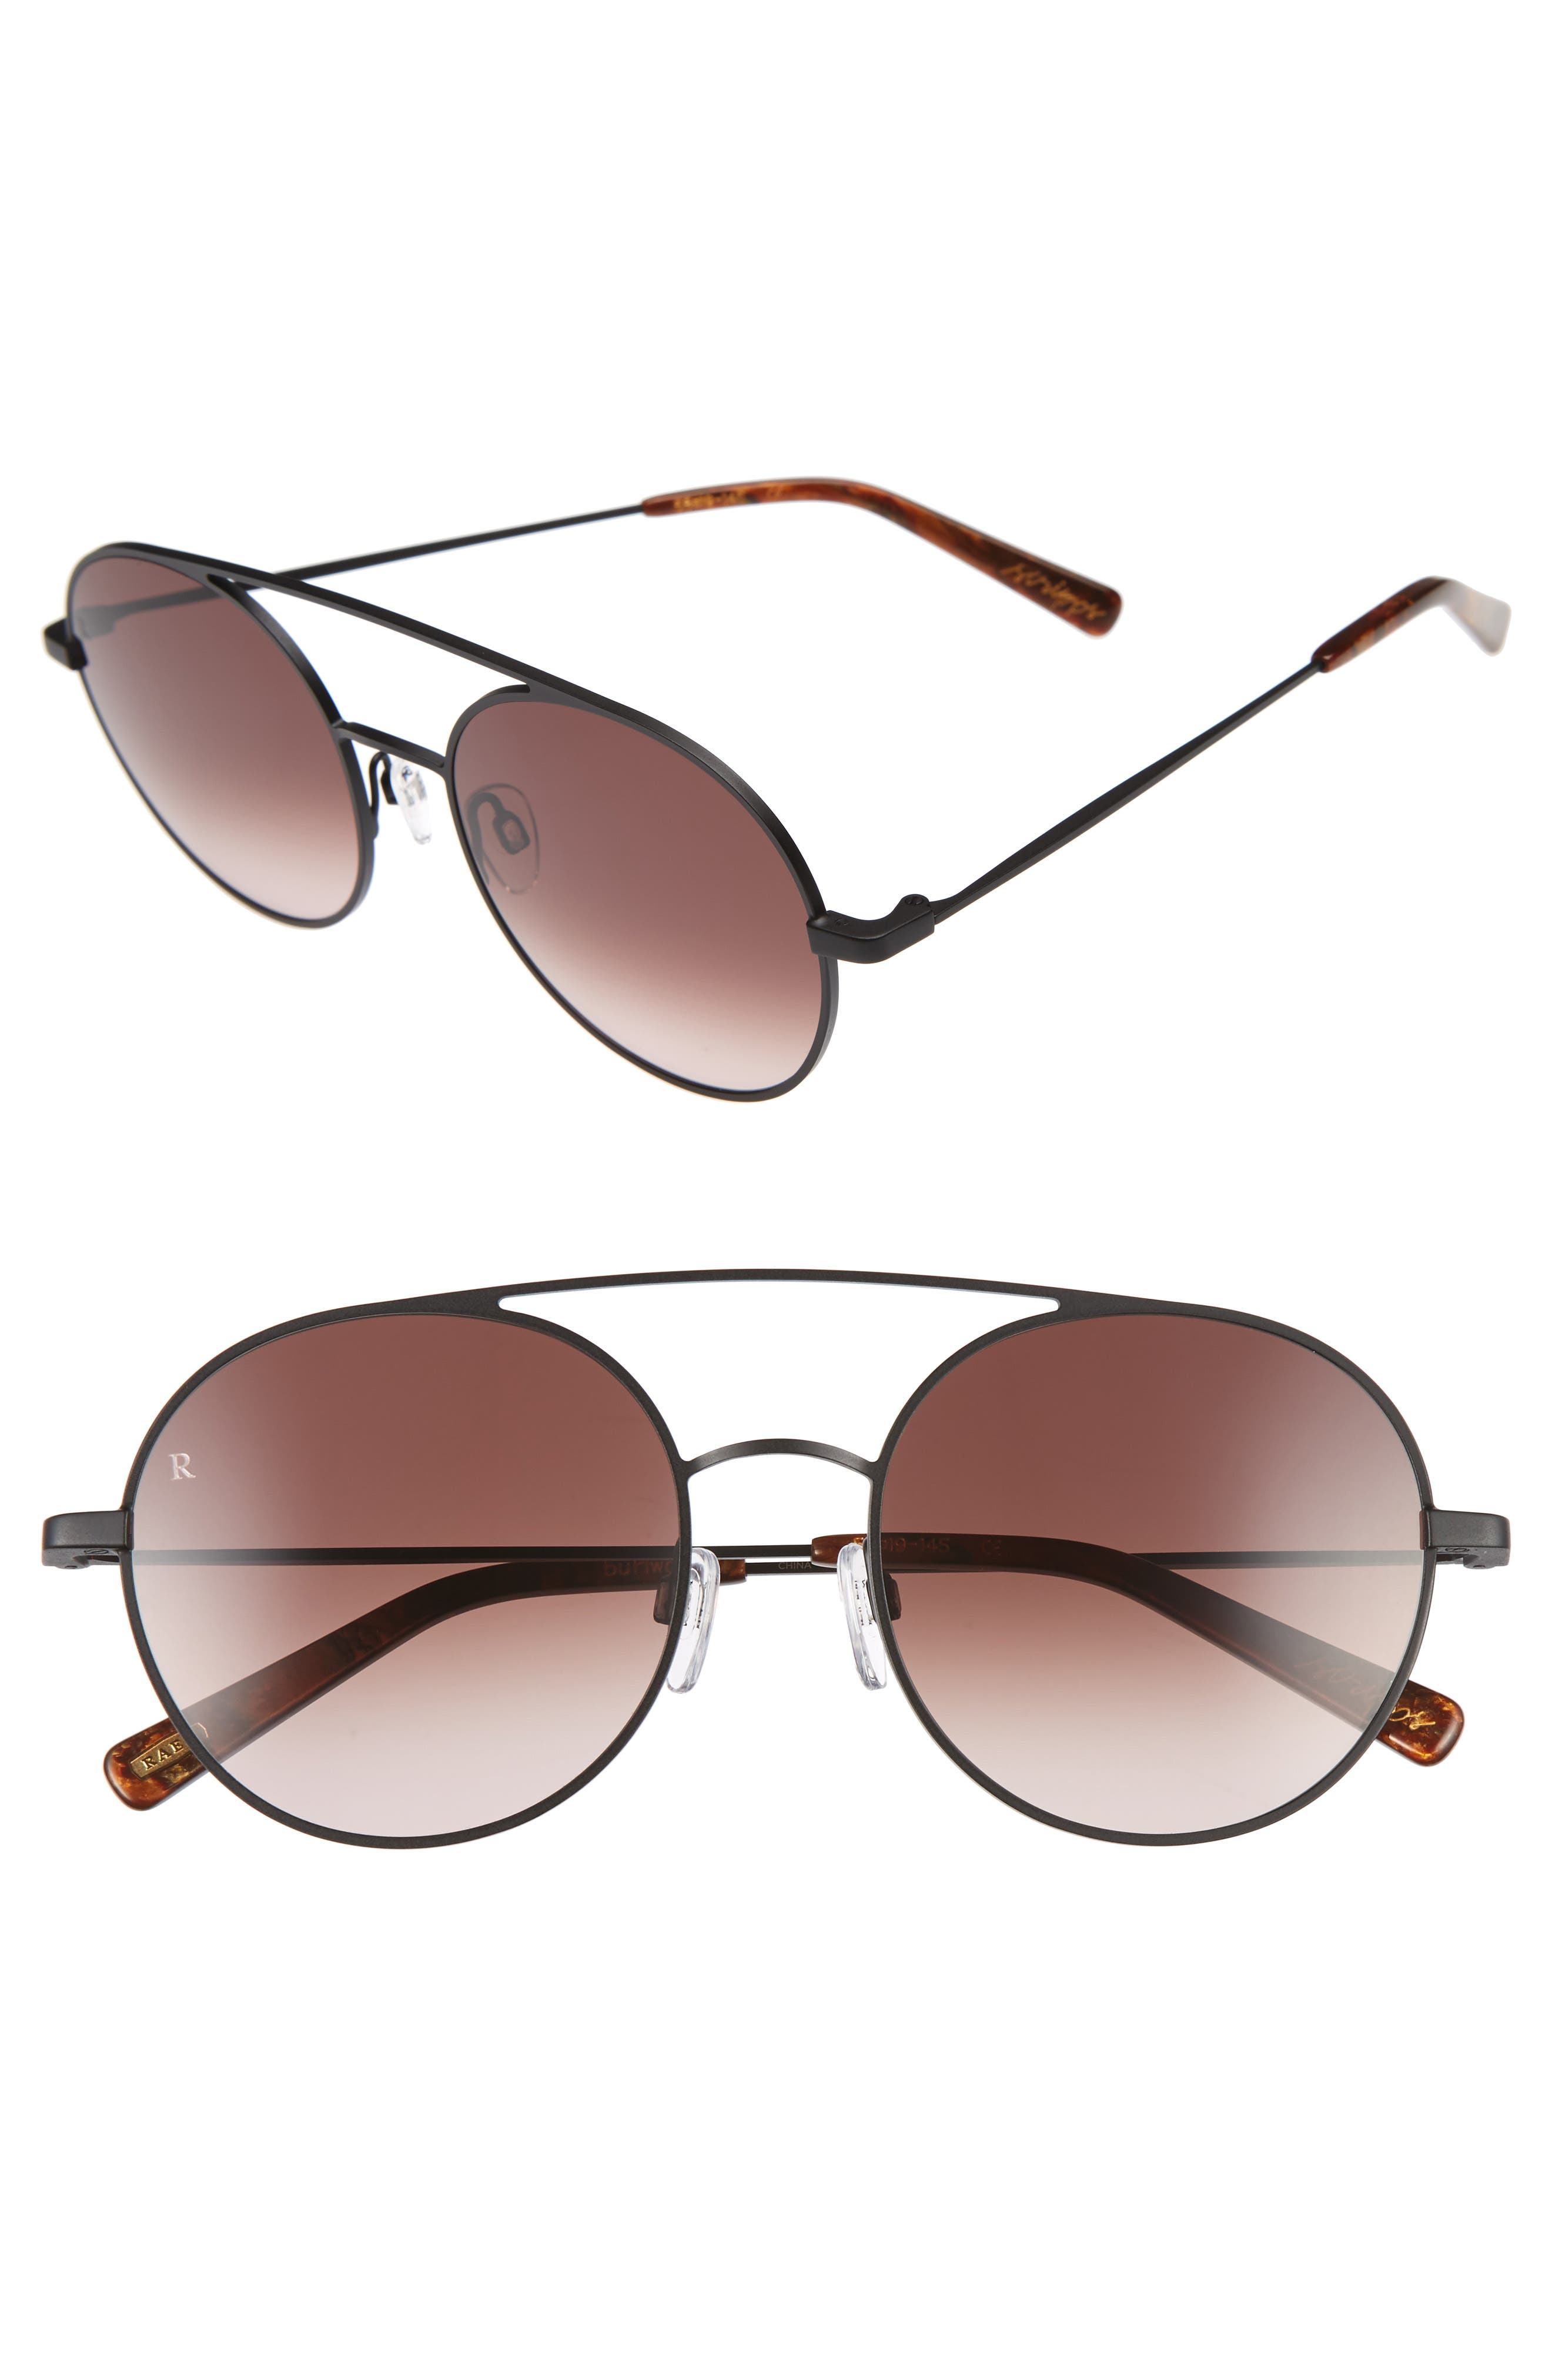 Scripps 55mm Round Sunglasses,                         Main,                         color, 001